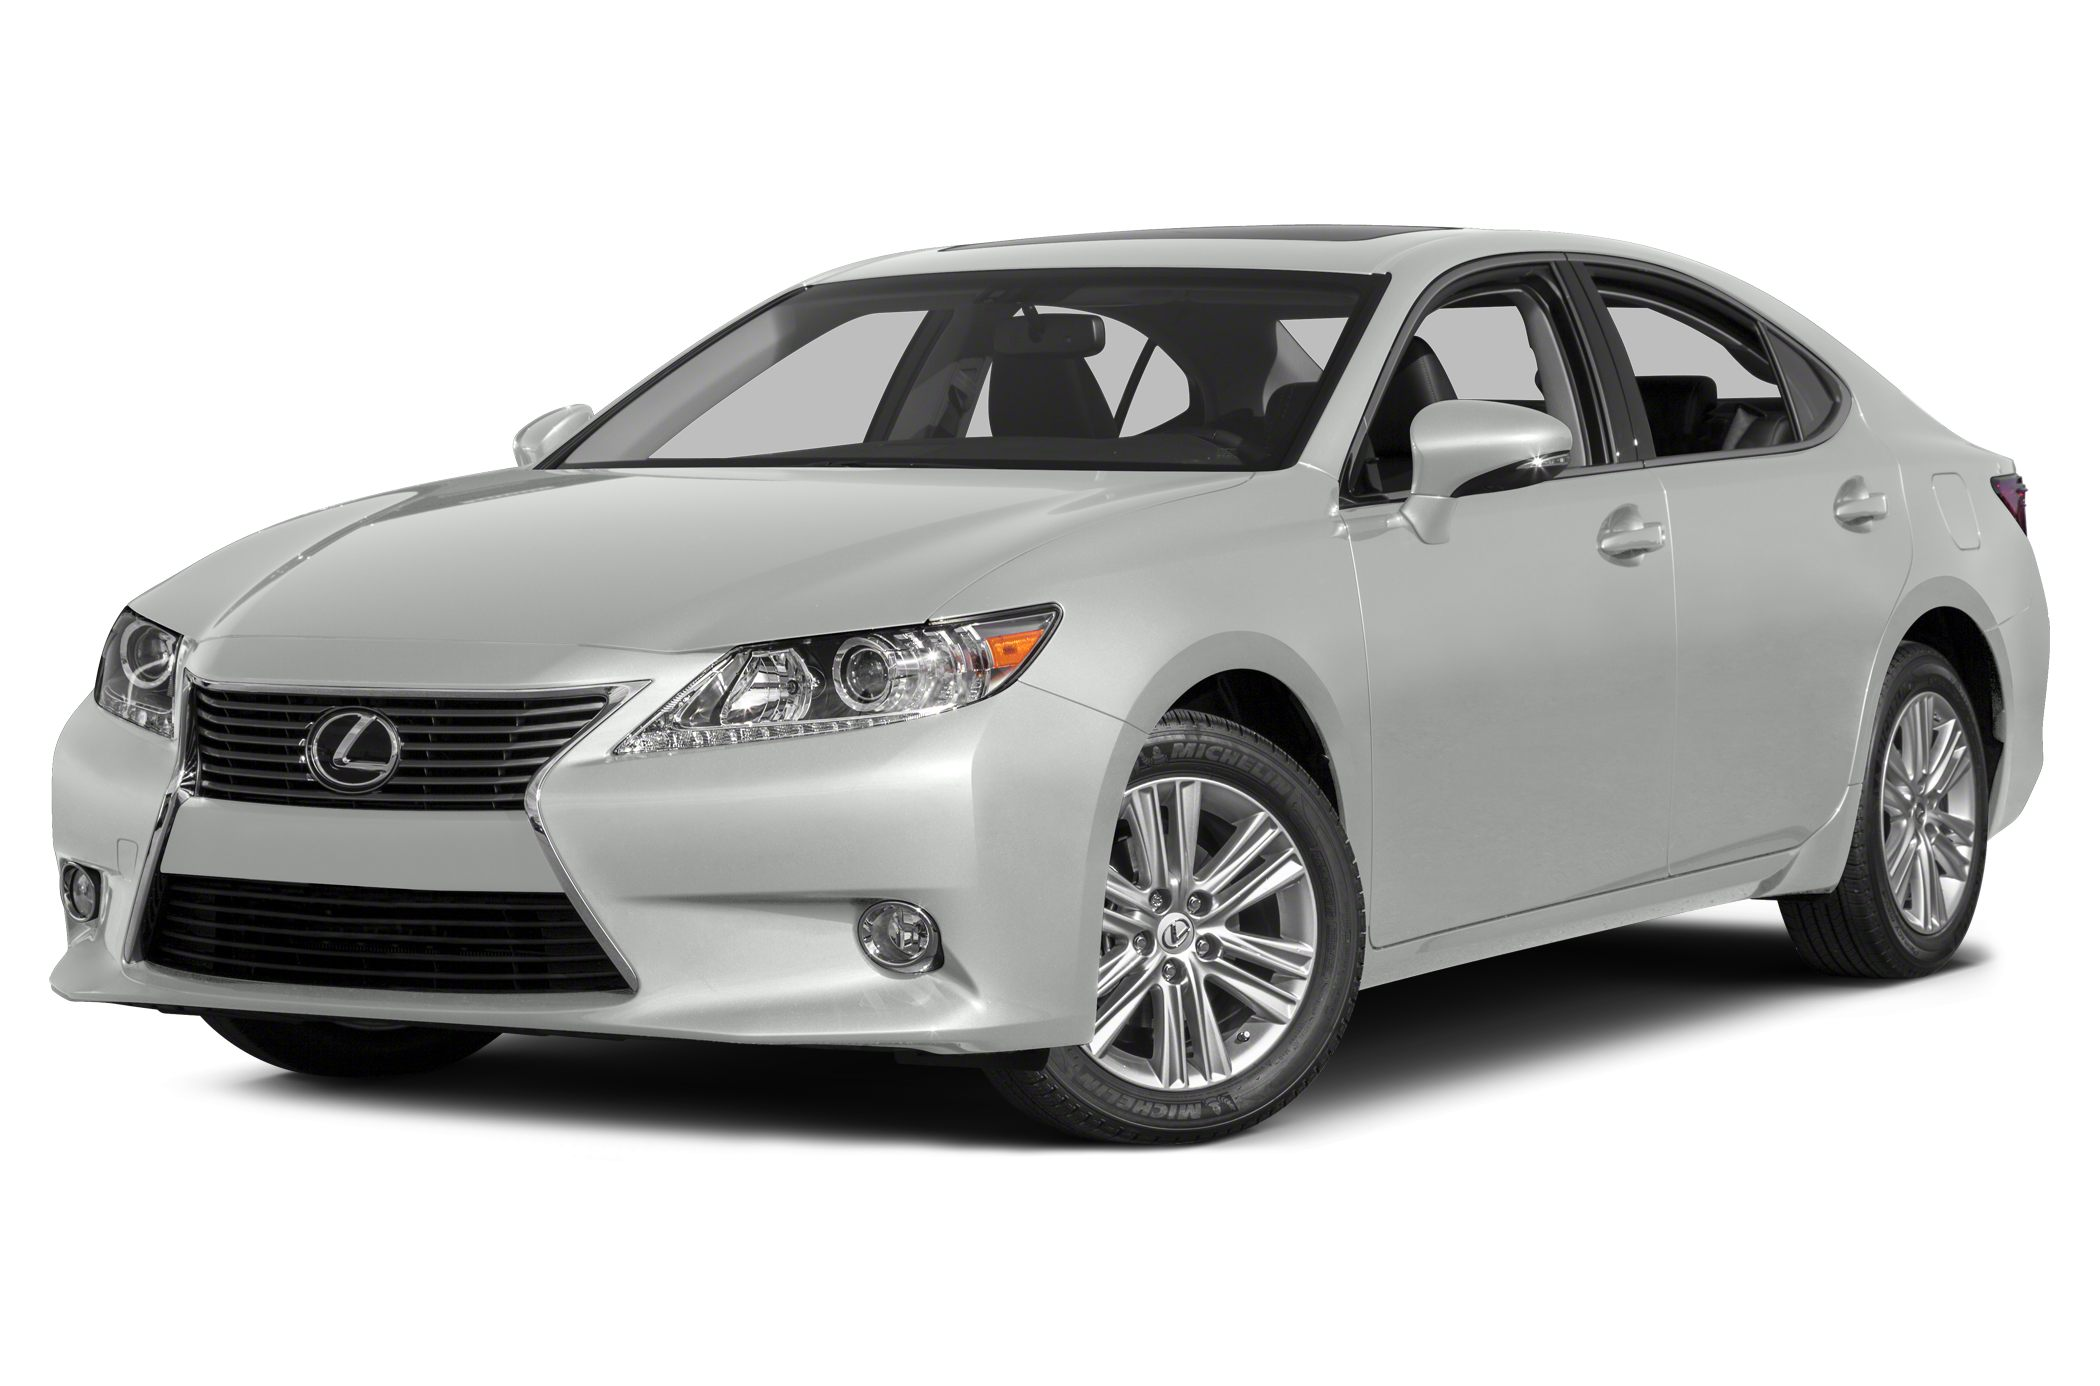 2013 Lexus ES 350 Base Sedan for sale in Pembroke Pines for $31,999 with 13,272 miles.